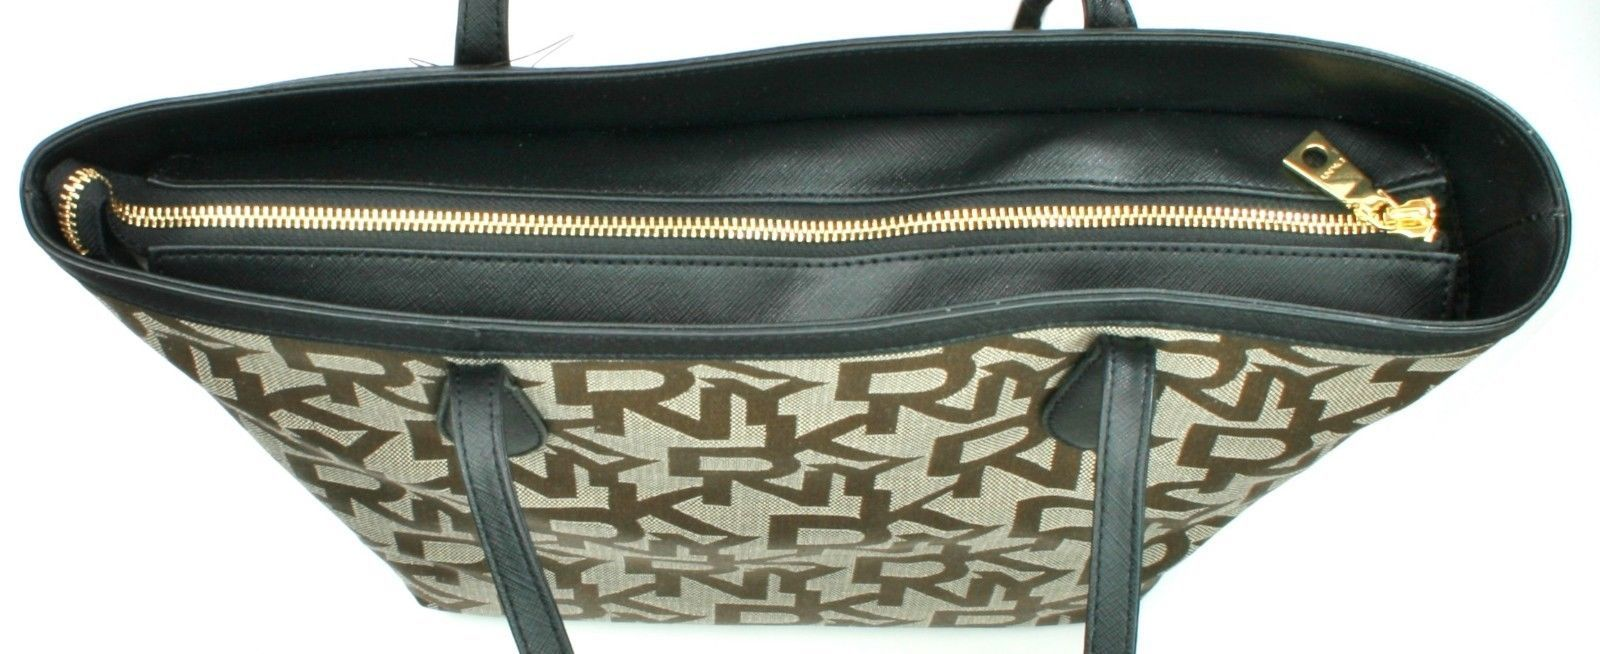 DKNY Donna Karan Brown Logo Embossed Canvas Shopper Tote Bag Medium Handbag